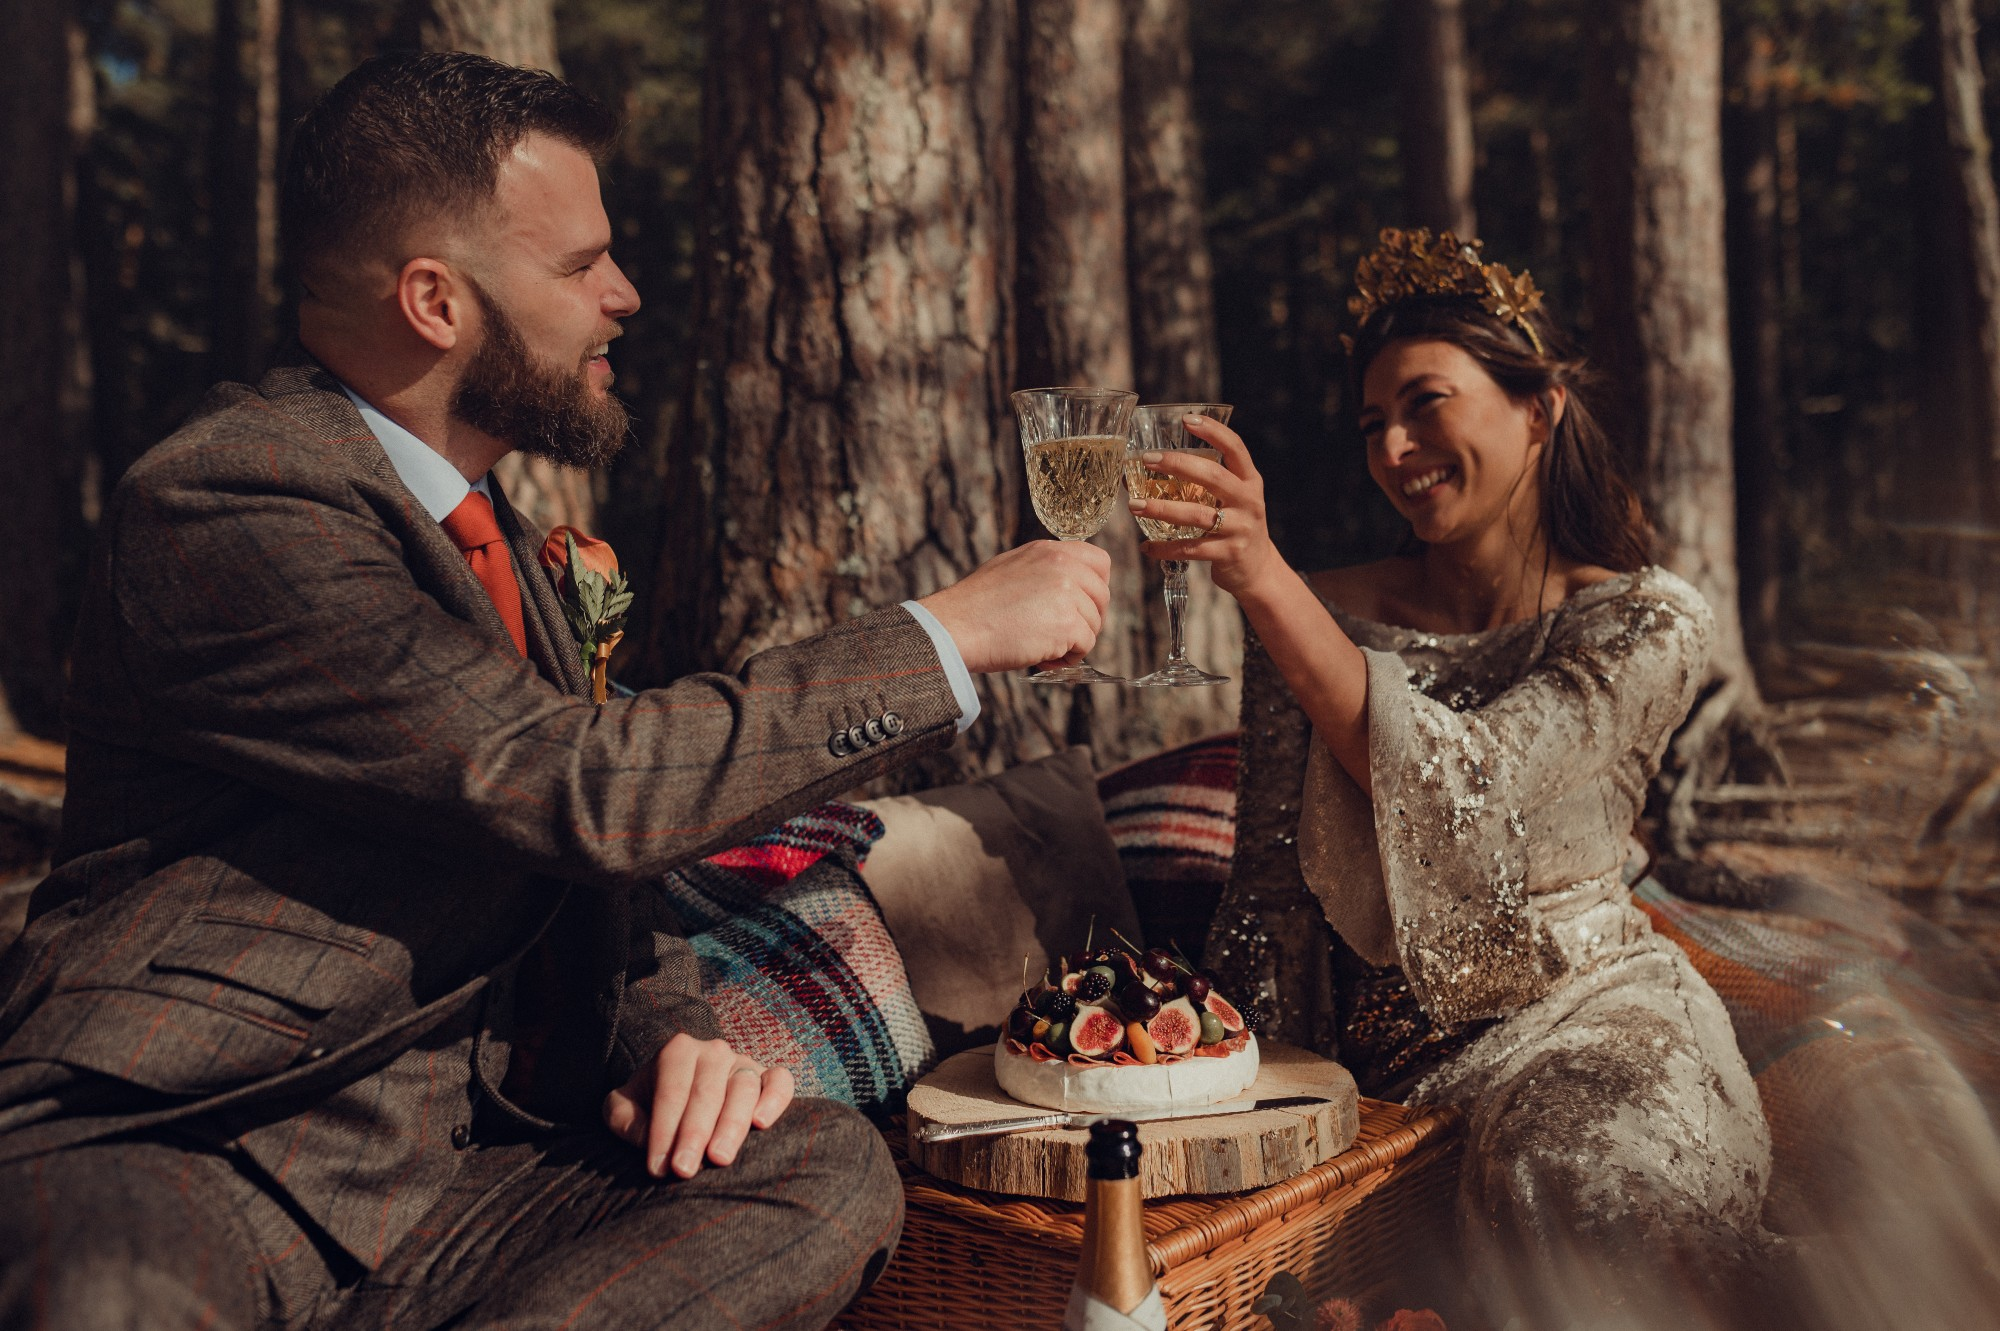 A toast to the happy couple as they enjoy a loch side picnic in the Cairngorms National Park